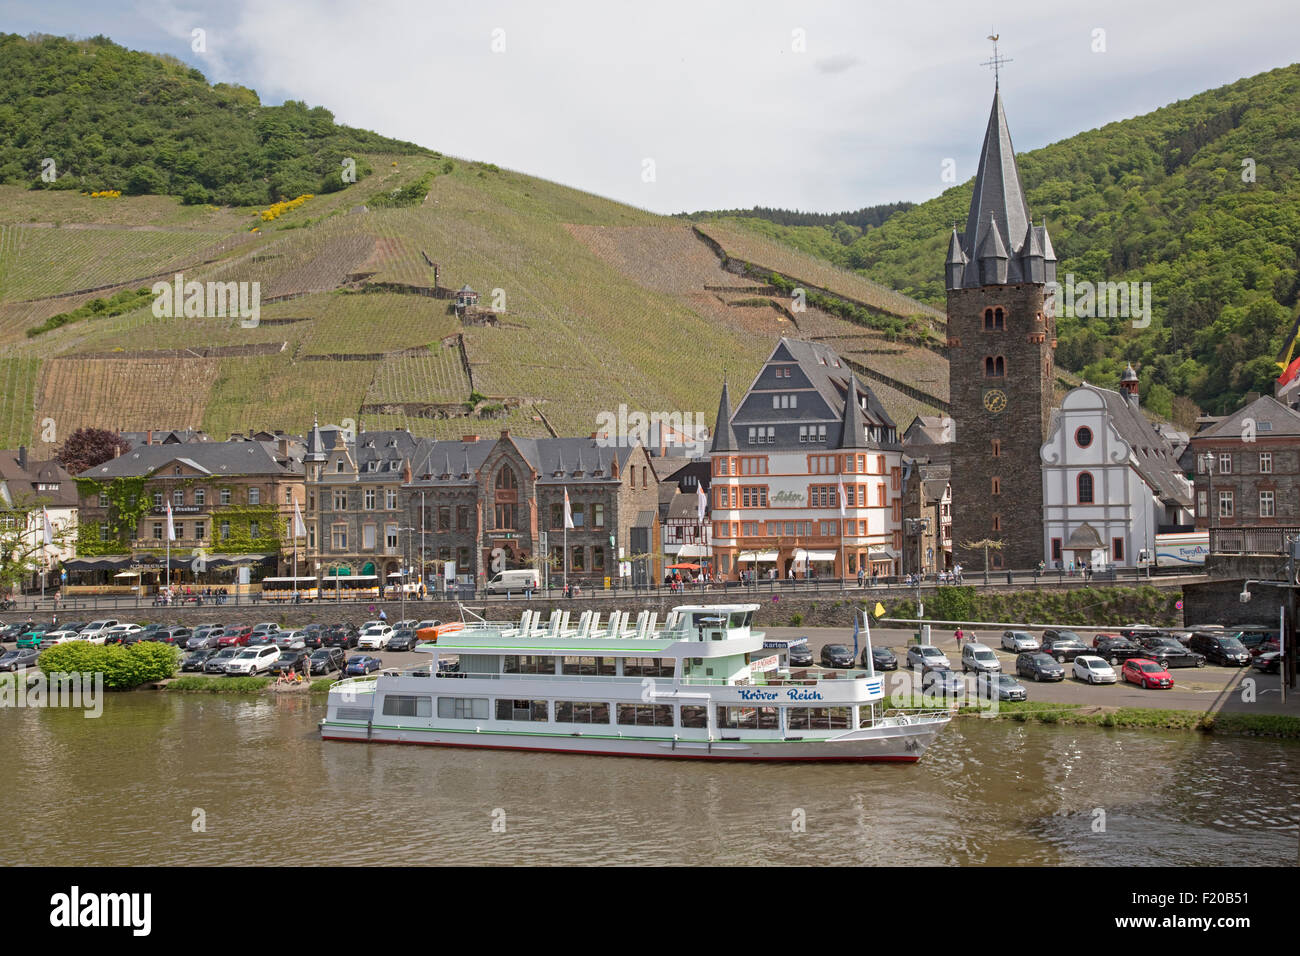 Krover Reich pleasure boat moored on quayside Bernkastel Germany - Stock Image